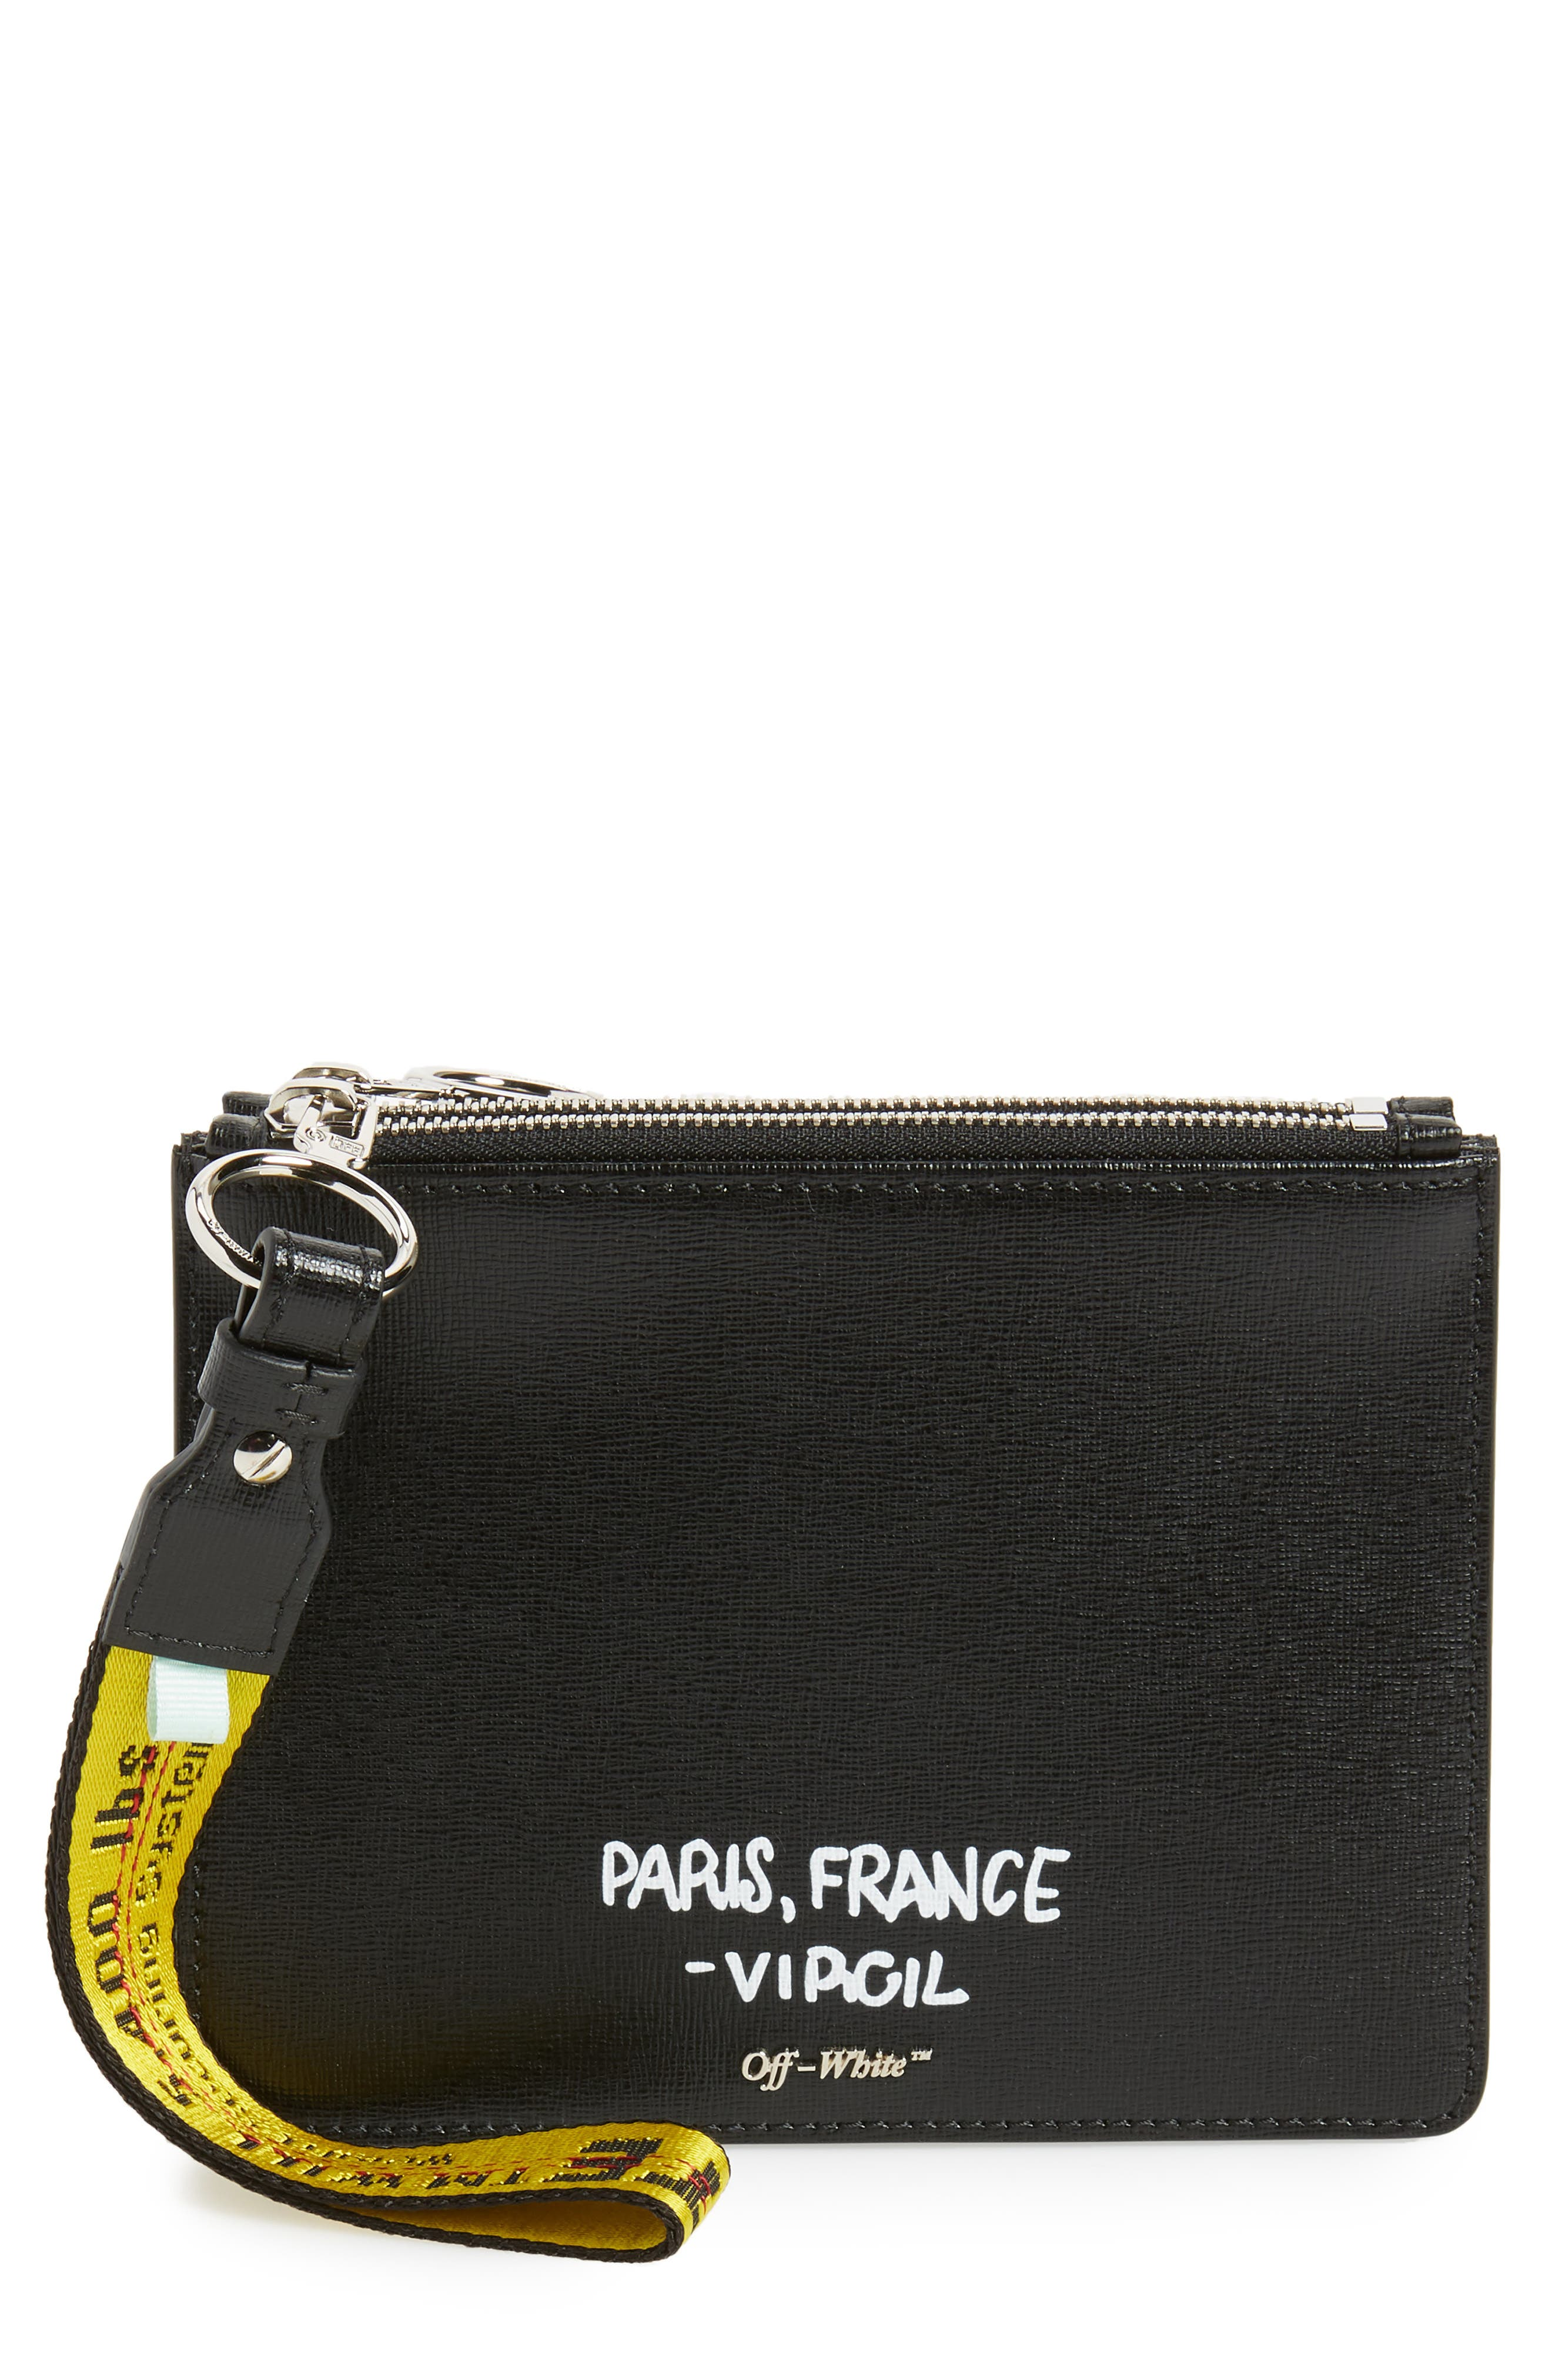 Off-White Virgil Was Here Set of 2 Zip Pouches